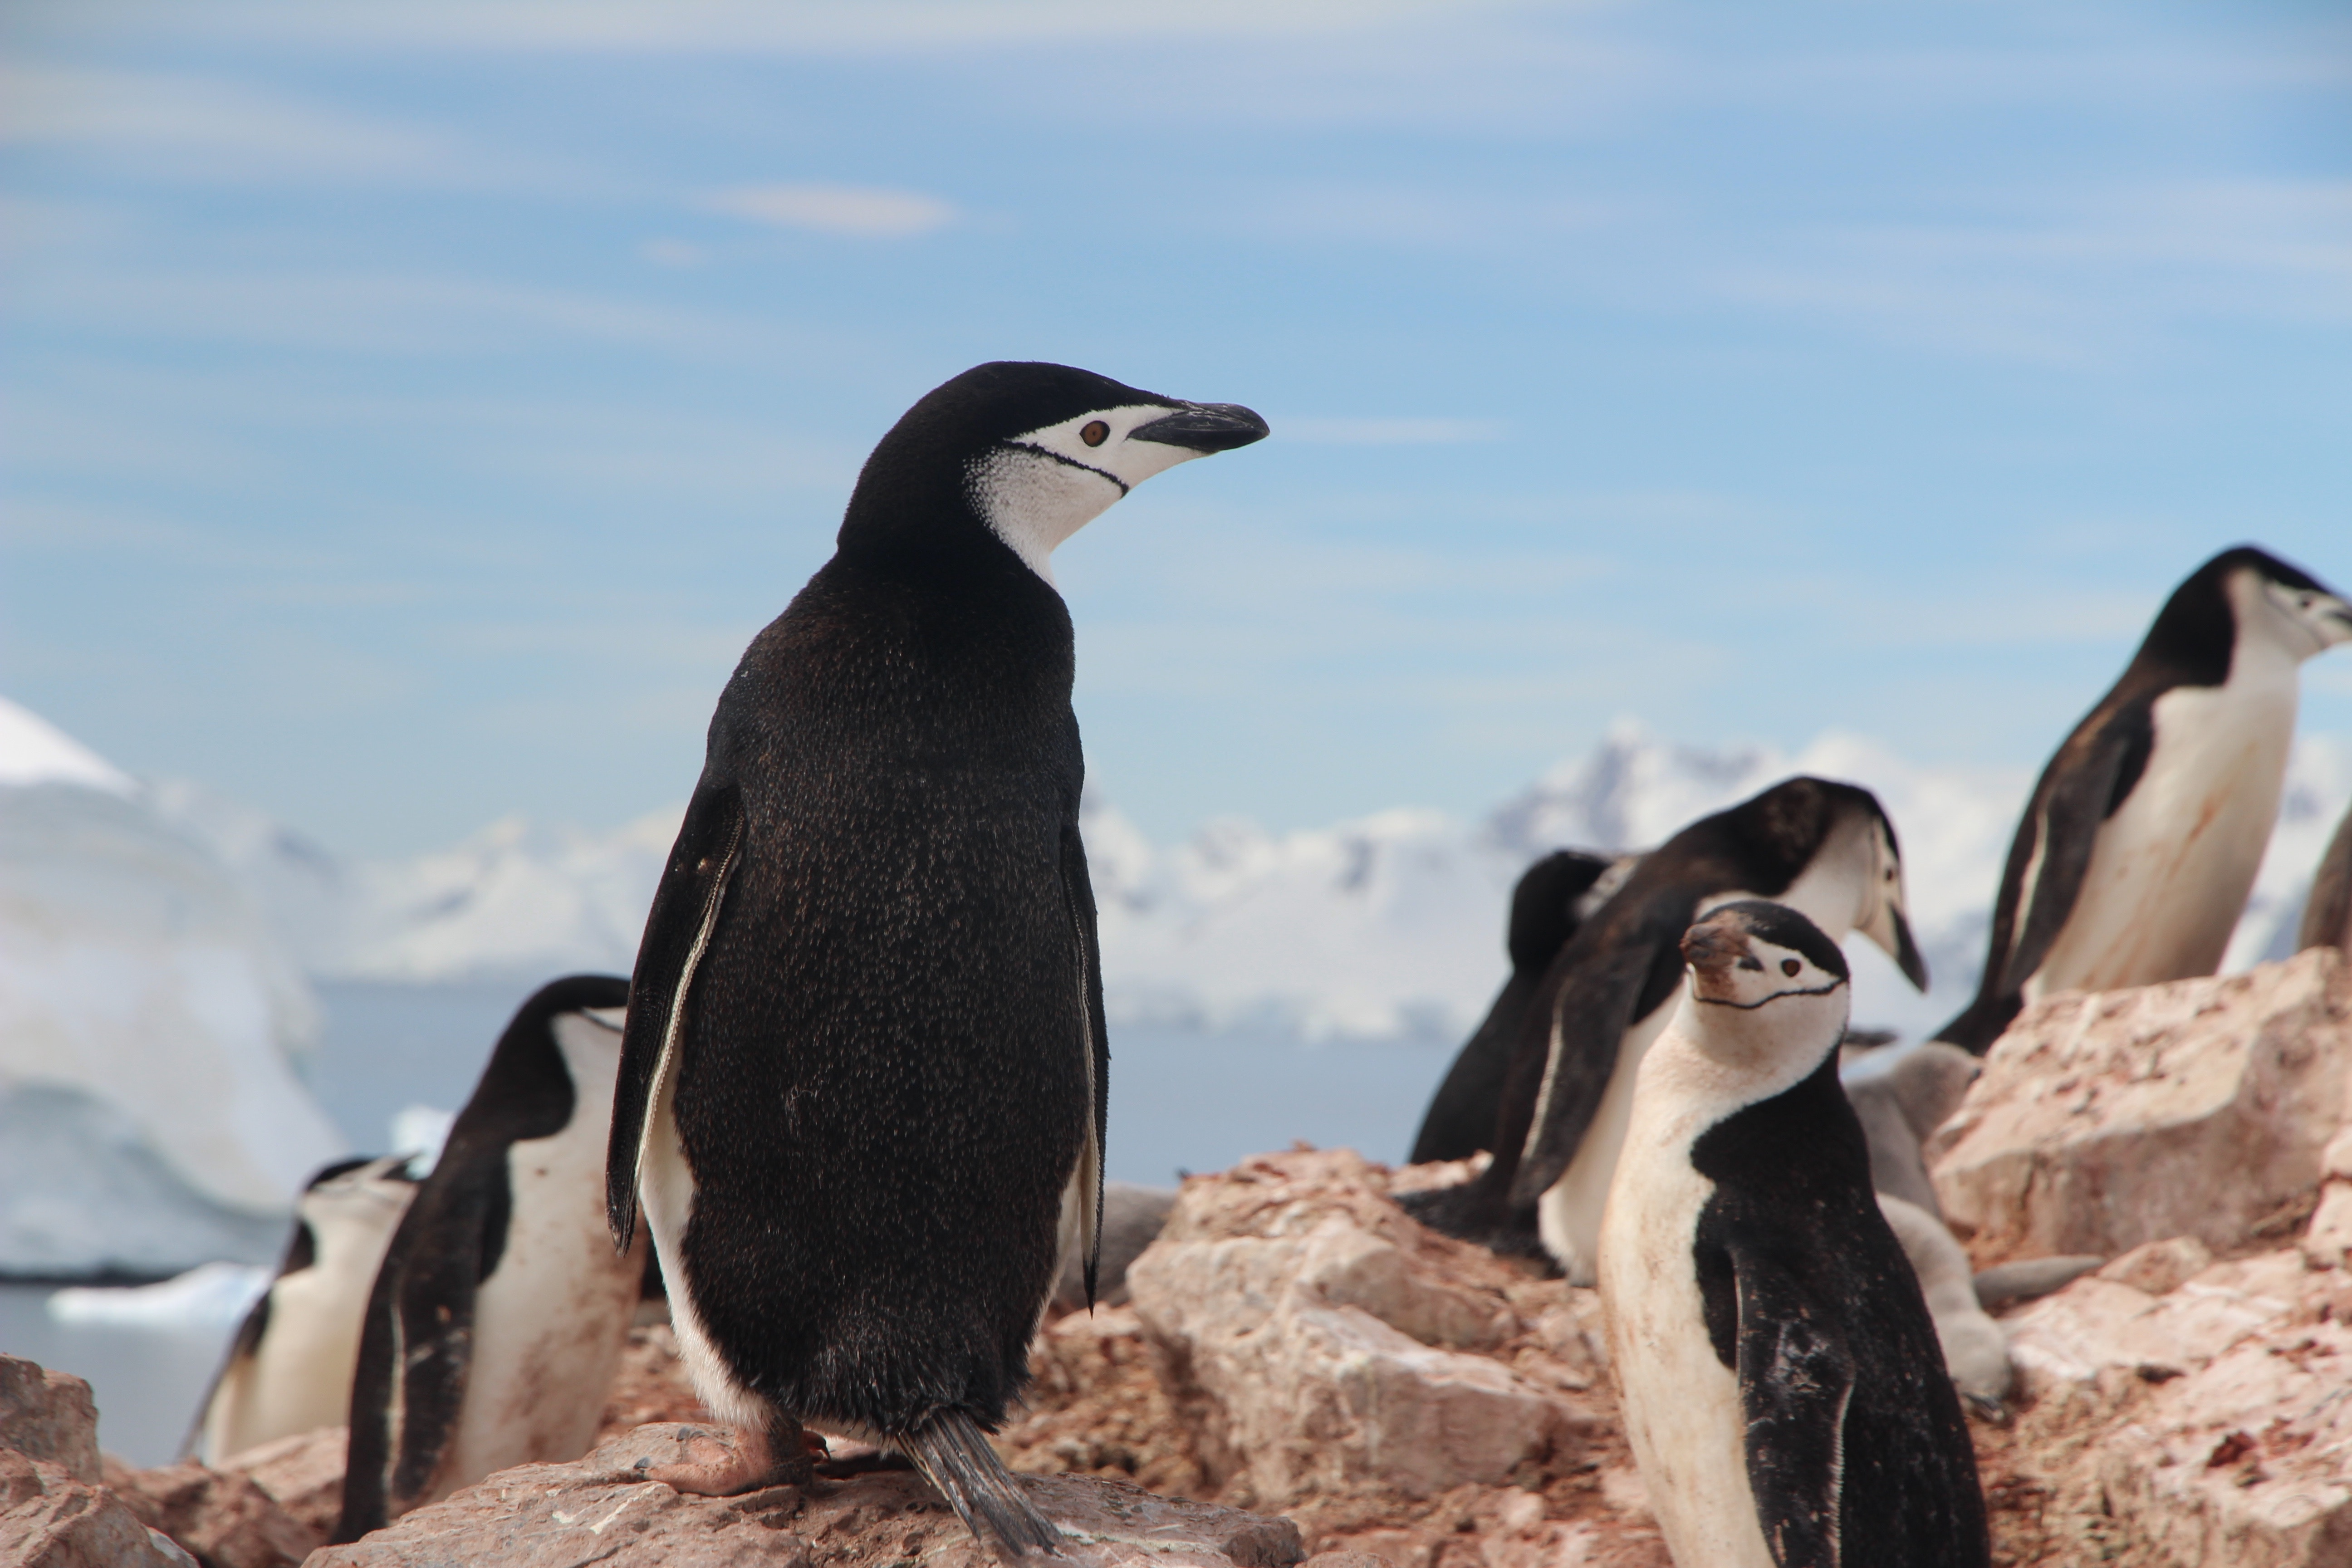 Penguins: They Exist and May Actually Help You PengWIN at Your Career